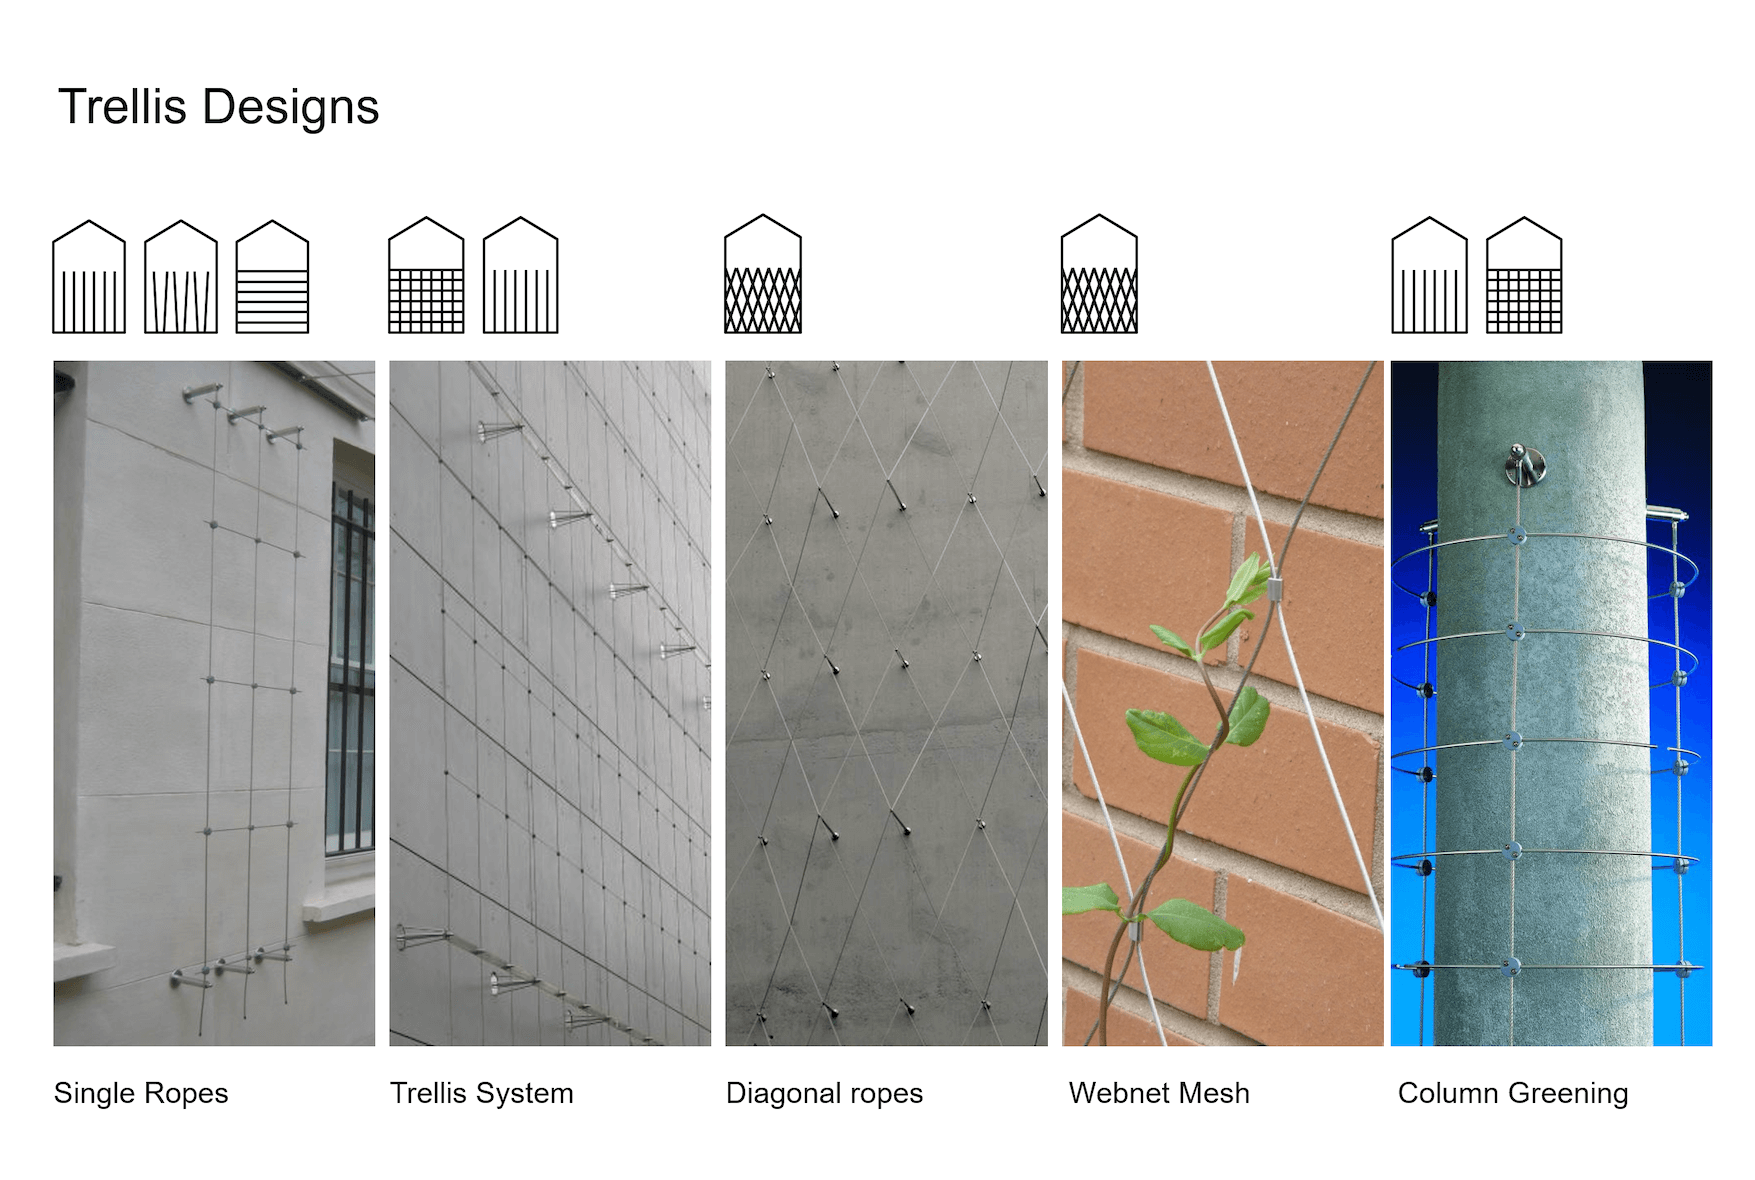 Trellis Systems for Living Walls / Tensile Design & Construct